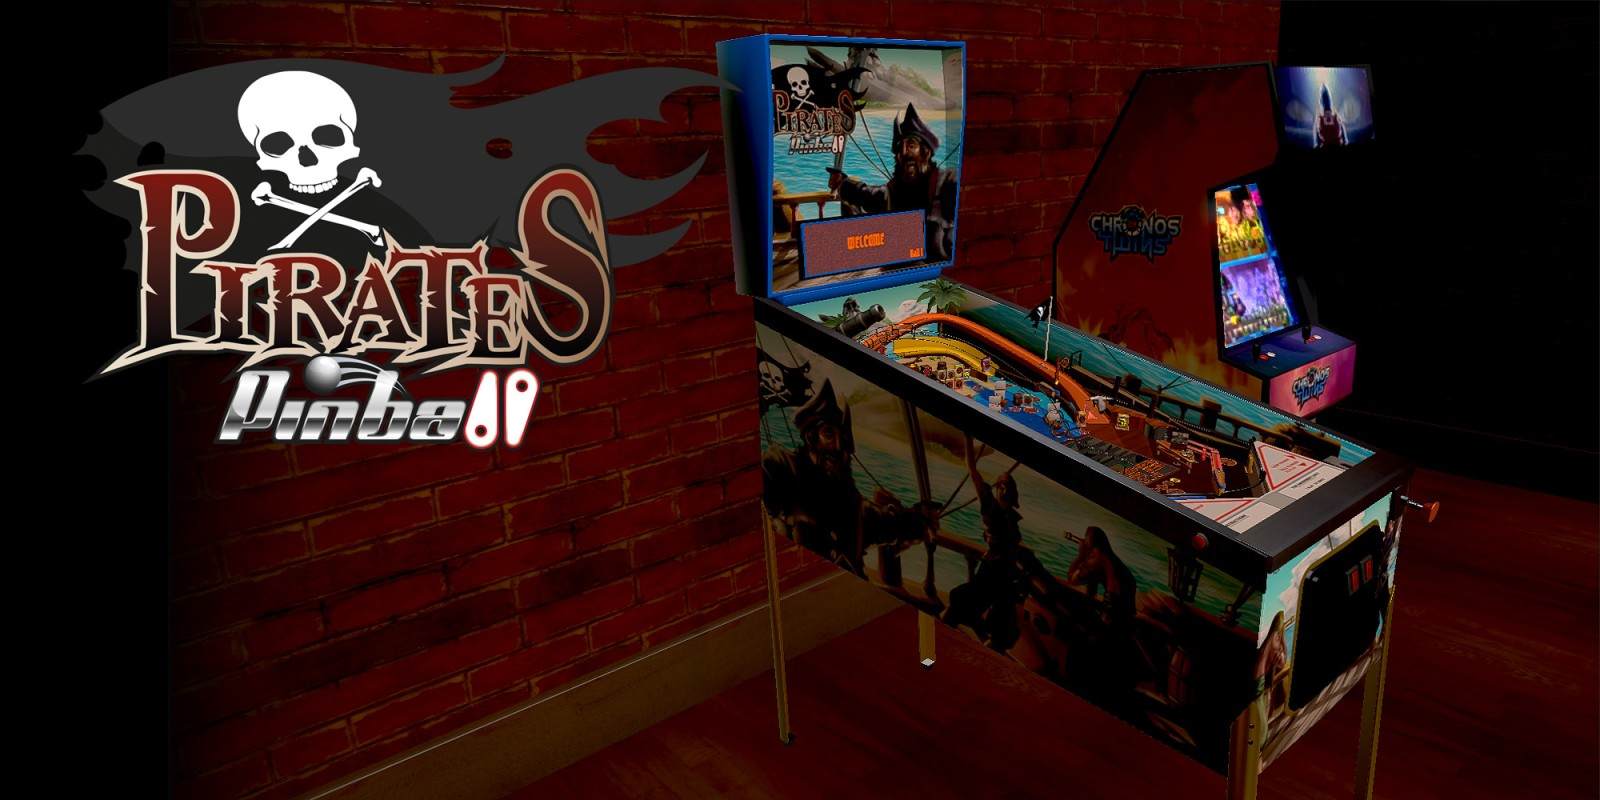 Pirates Pinball Masthead